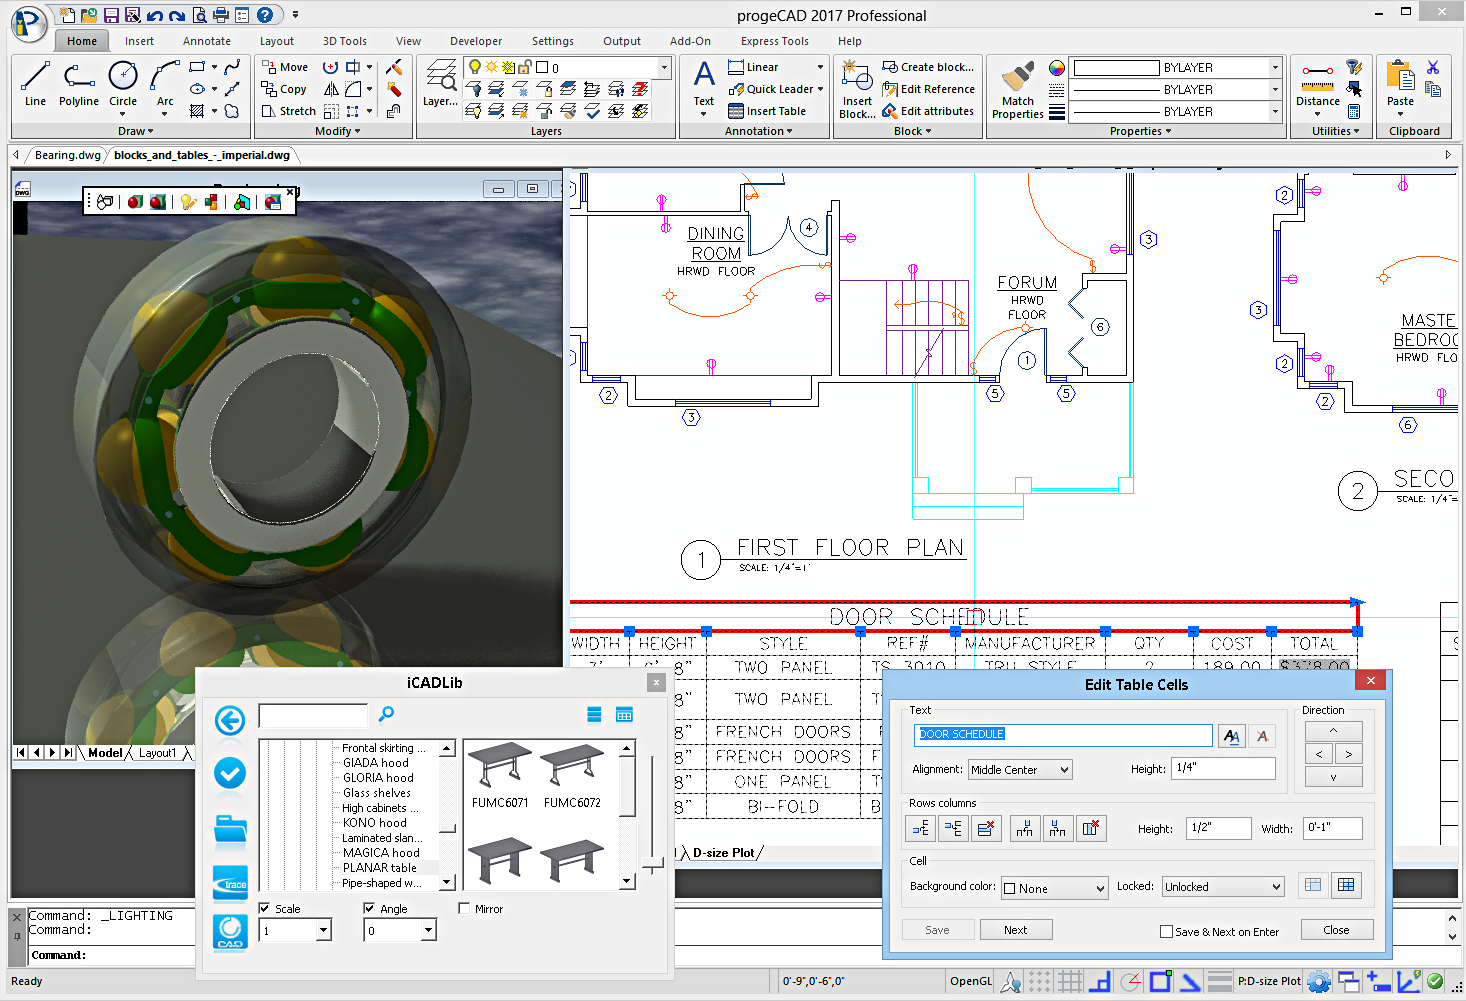 progeCAD 2018 Professional CAD Software Screenshot